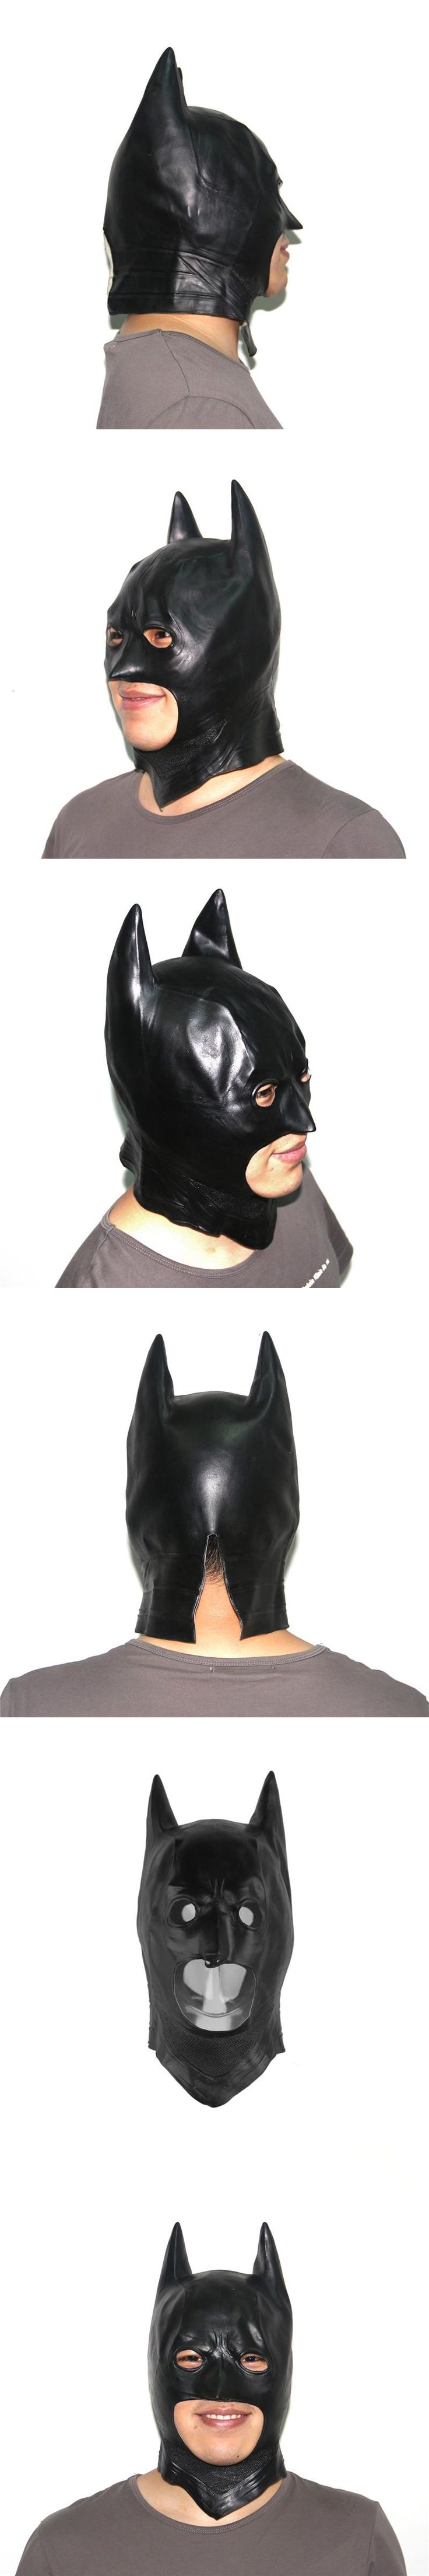 High Quality Miss the classic Batman Masks Halloween Men's Rubber Adult Full Costume Party Mask Cosplay Movie Latex Toy Props